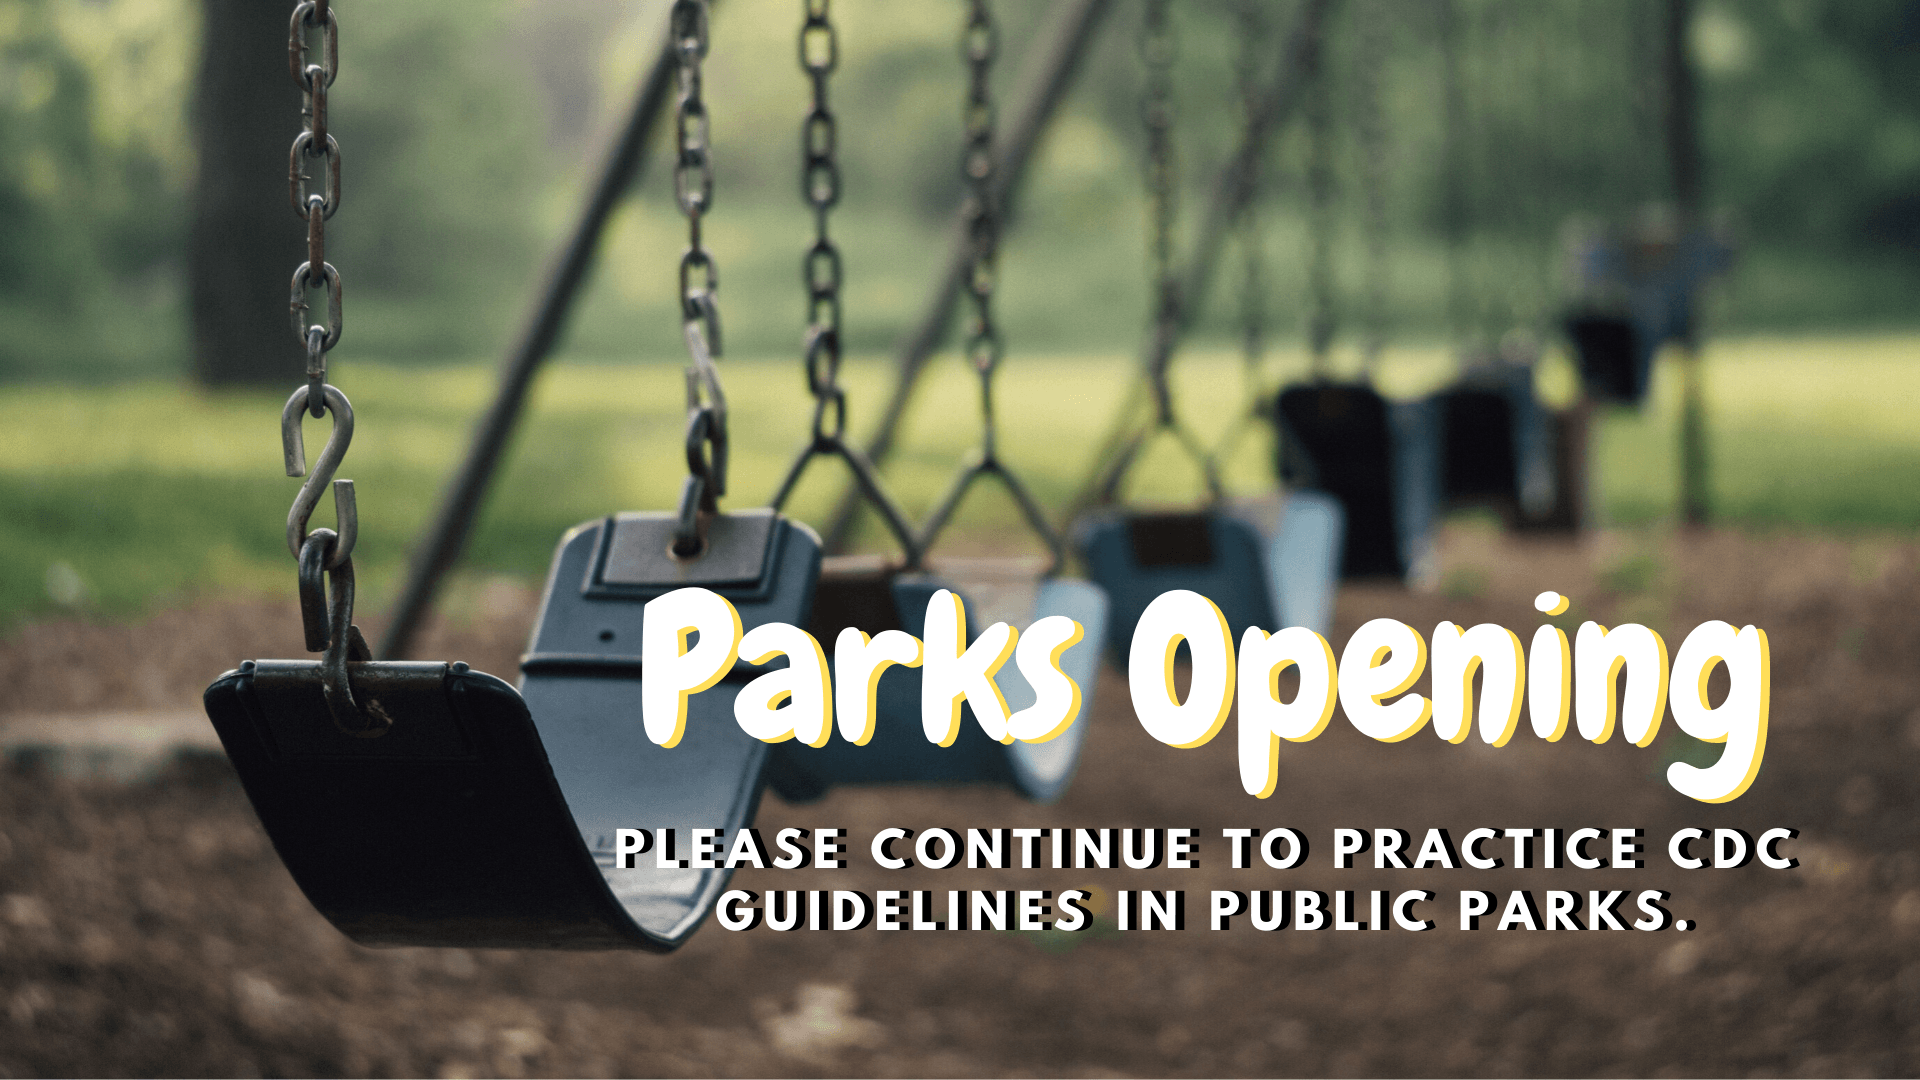 Park open with social distancing